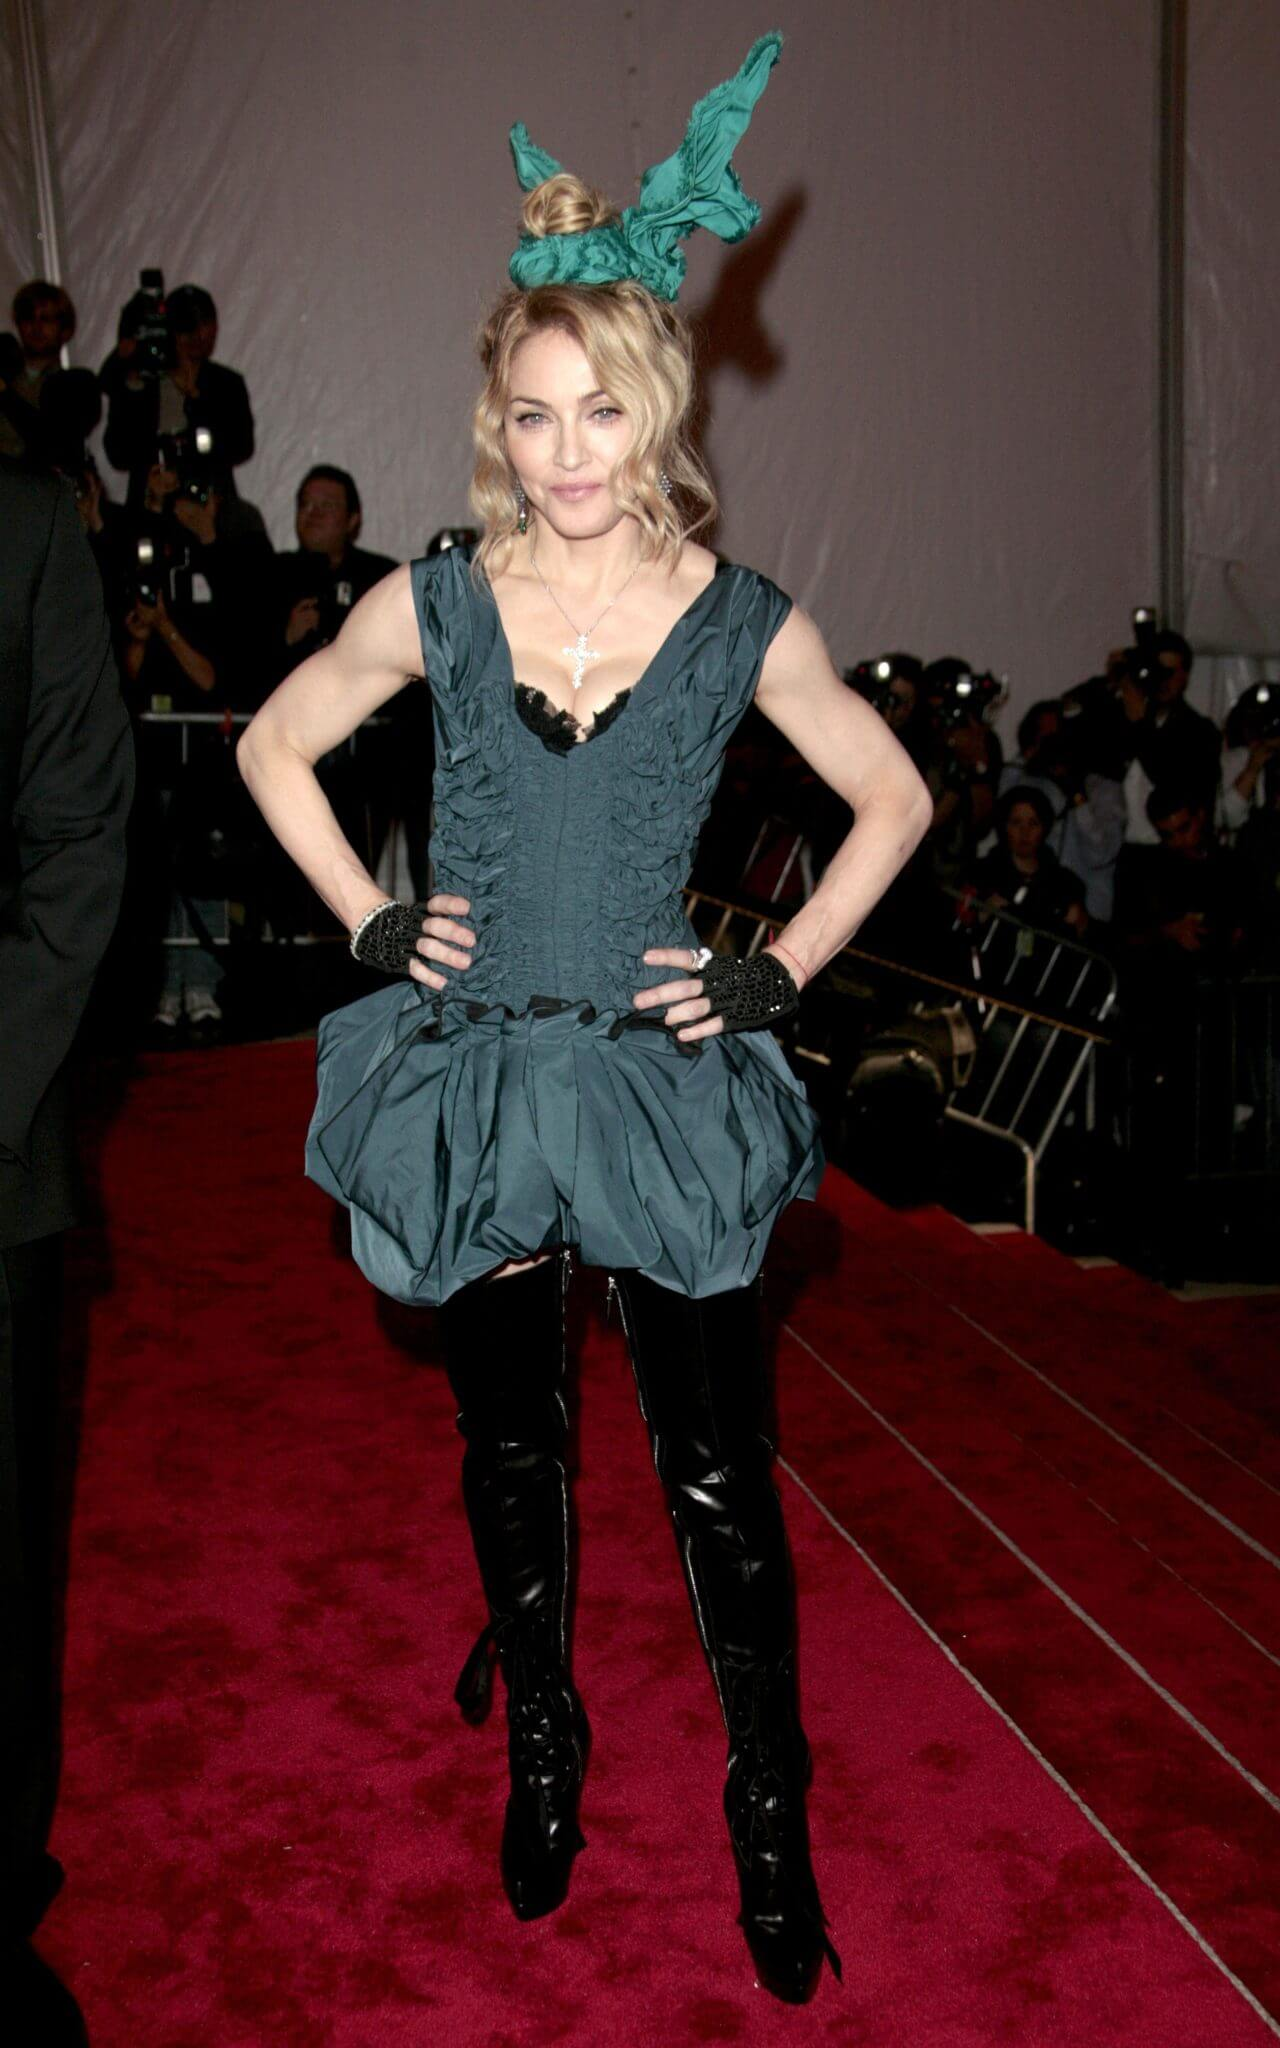 Madonna en la Met Gala 2009. Fotografía: Kevin Winter/Getty Images